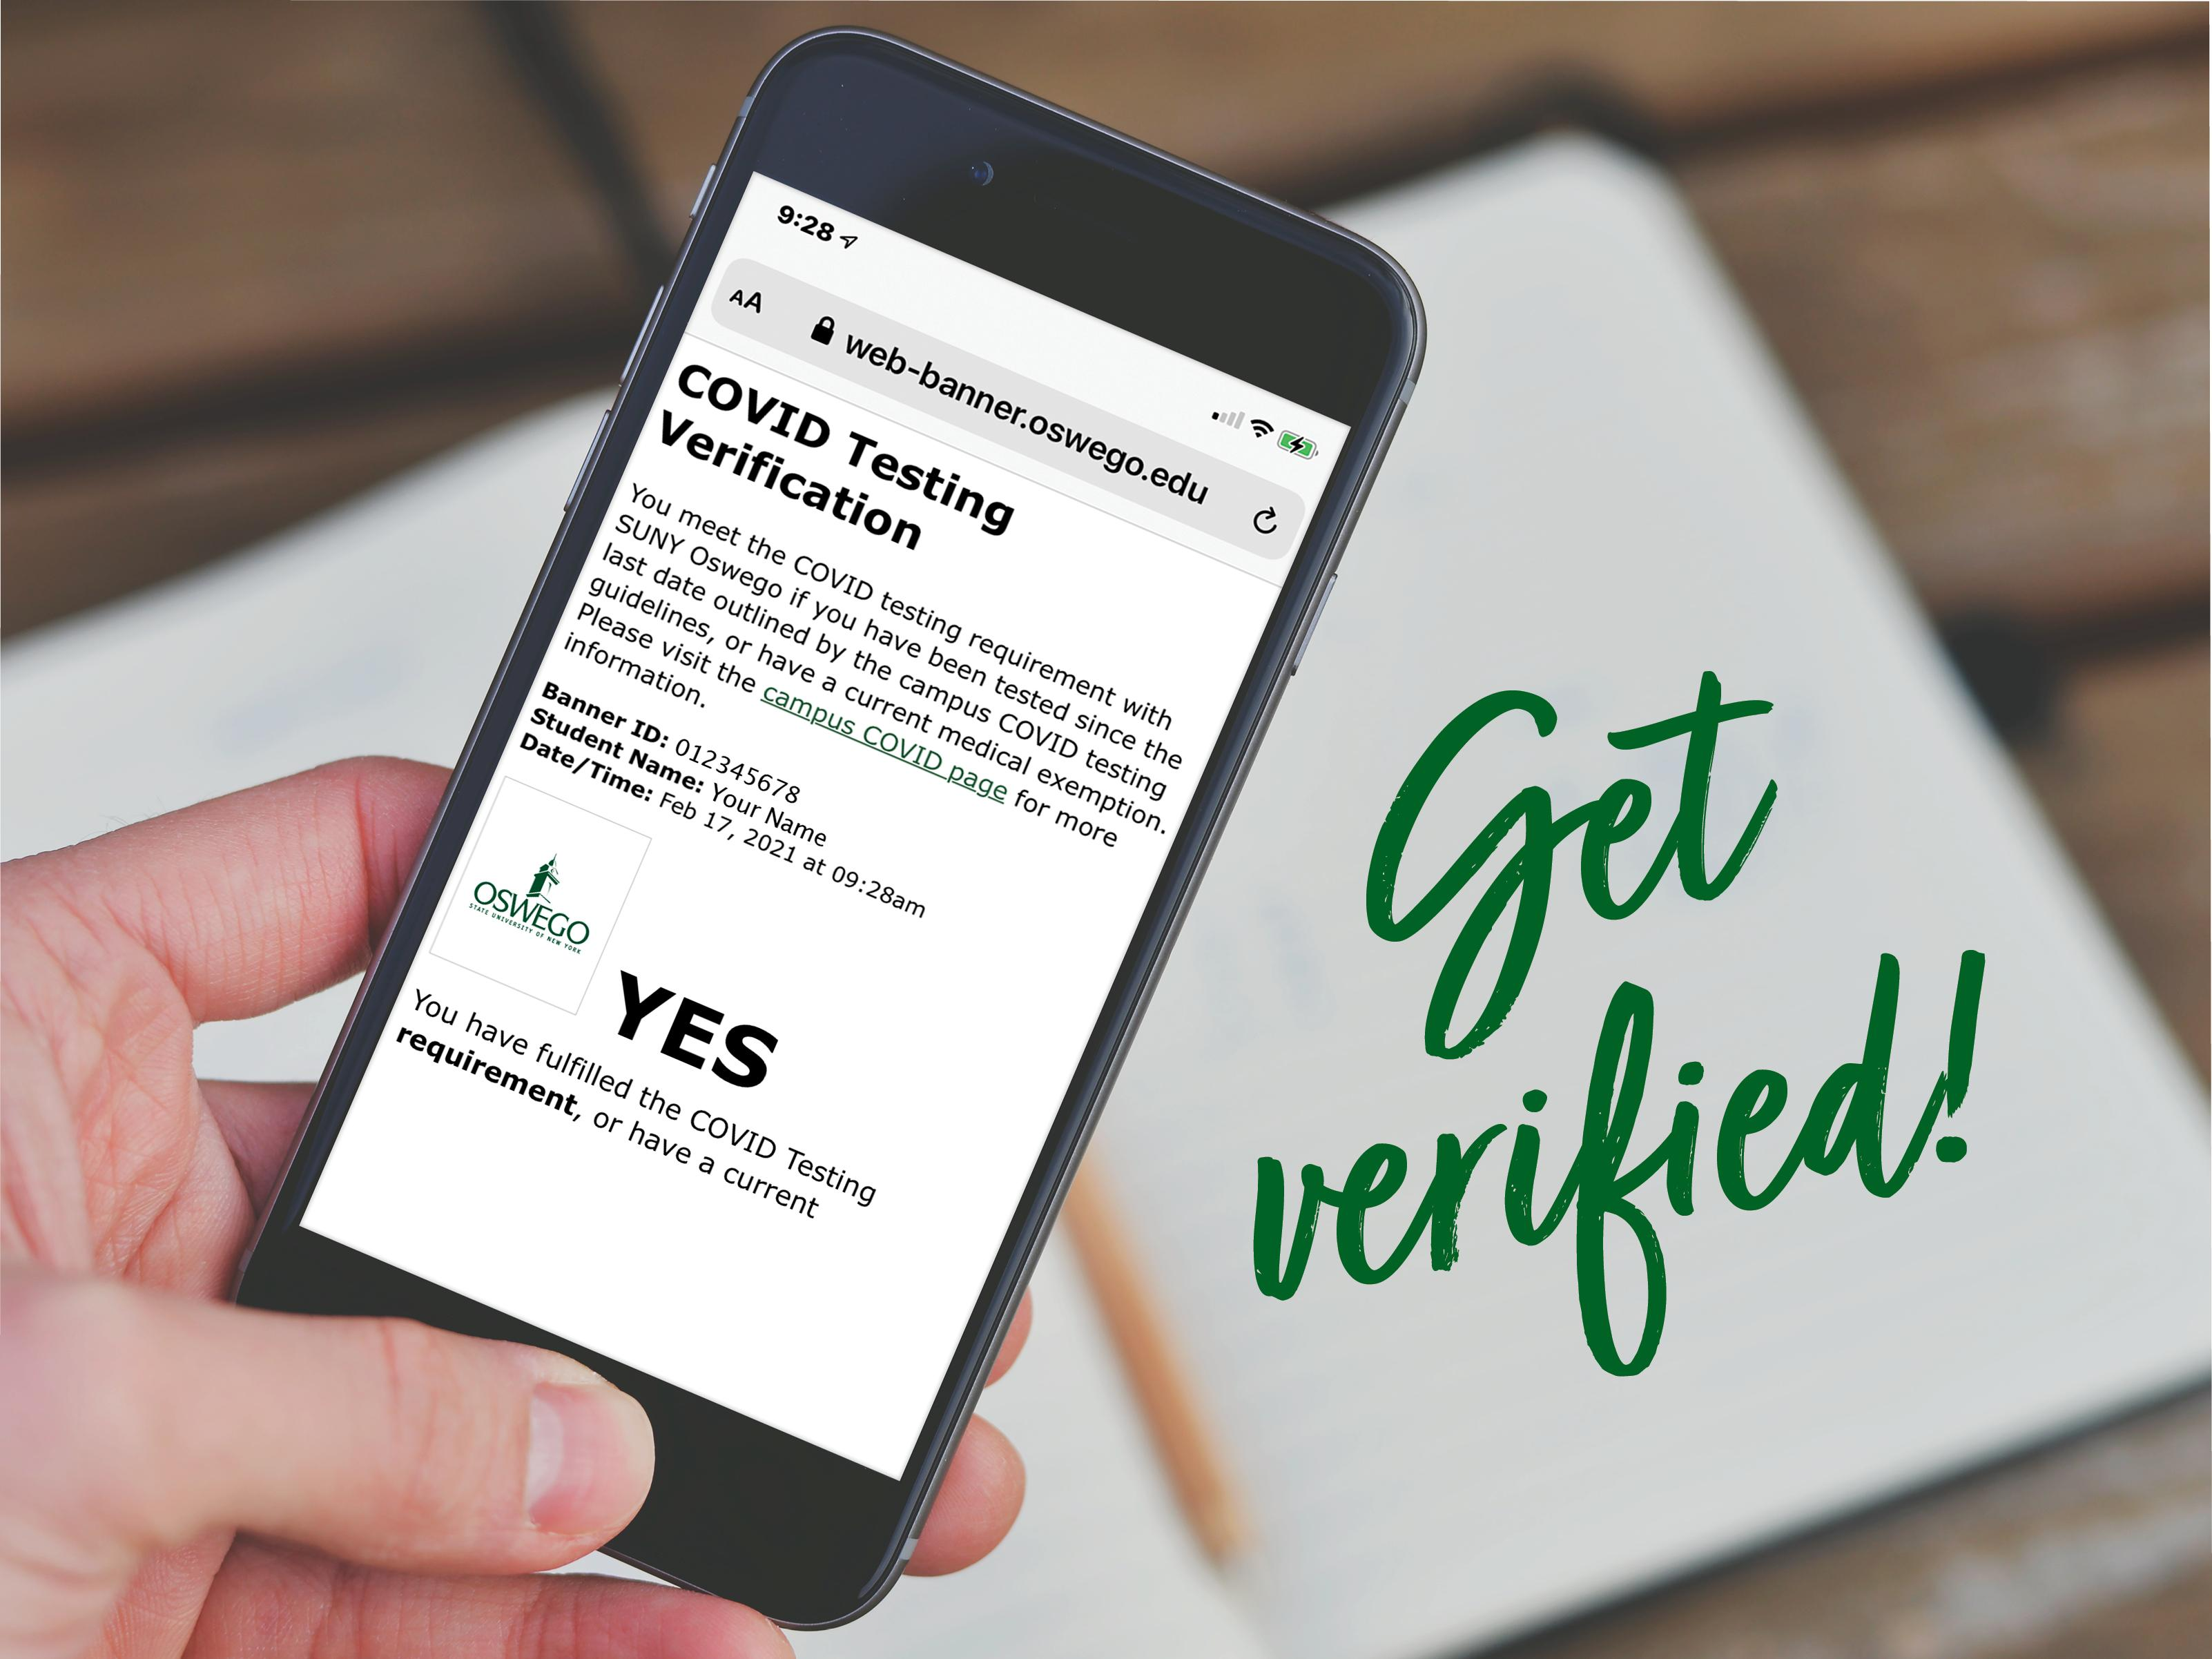 Image shows the verification notification on a smartphone with a Get Verified! reminder